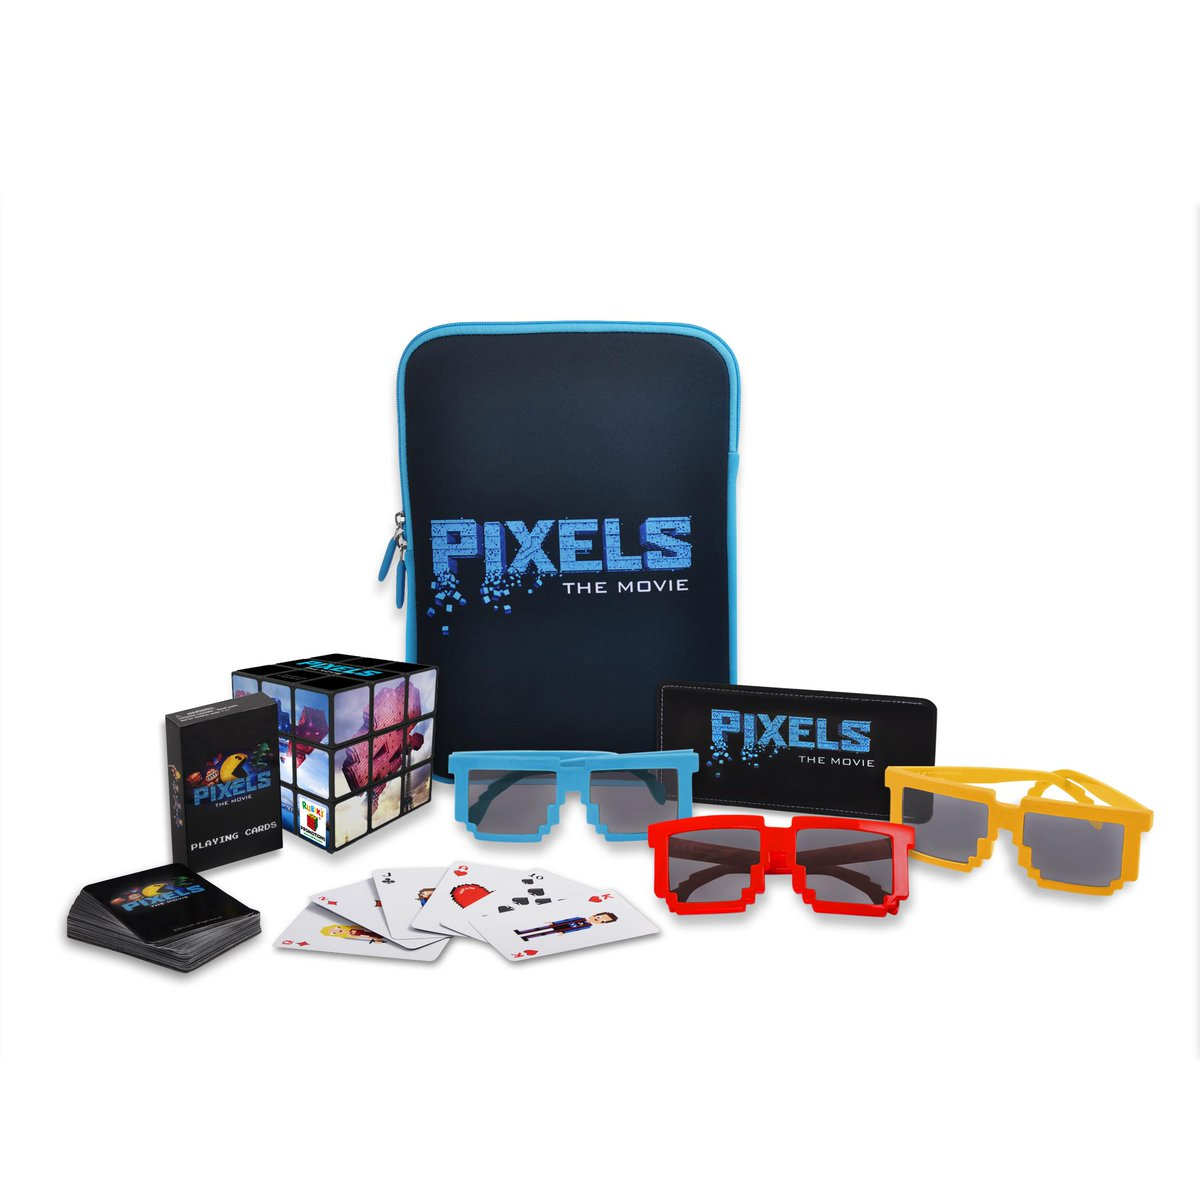 Game on! RT to win a goodie bag bursting with #PixelsMovie merch for you & a mate! Enter by 160815 http://t.co/mttKTglKsS